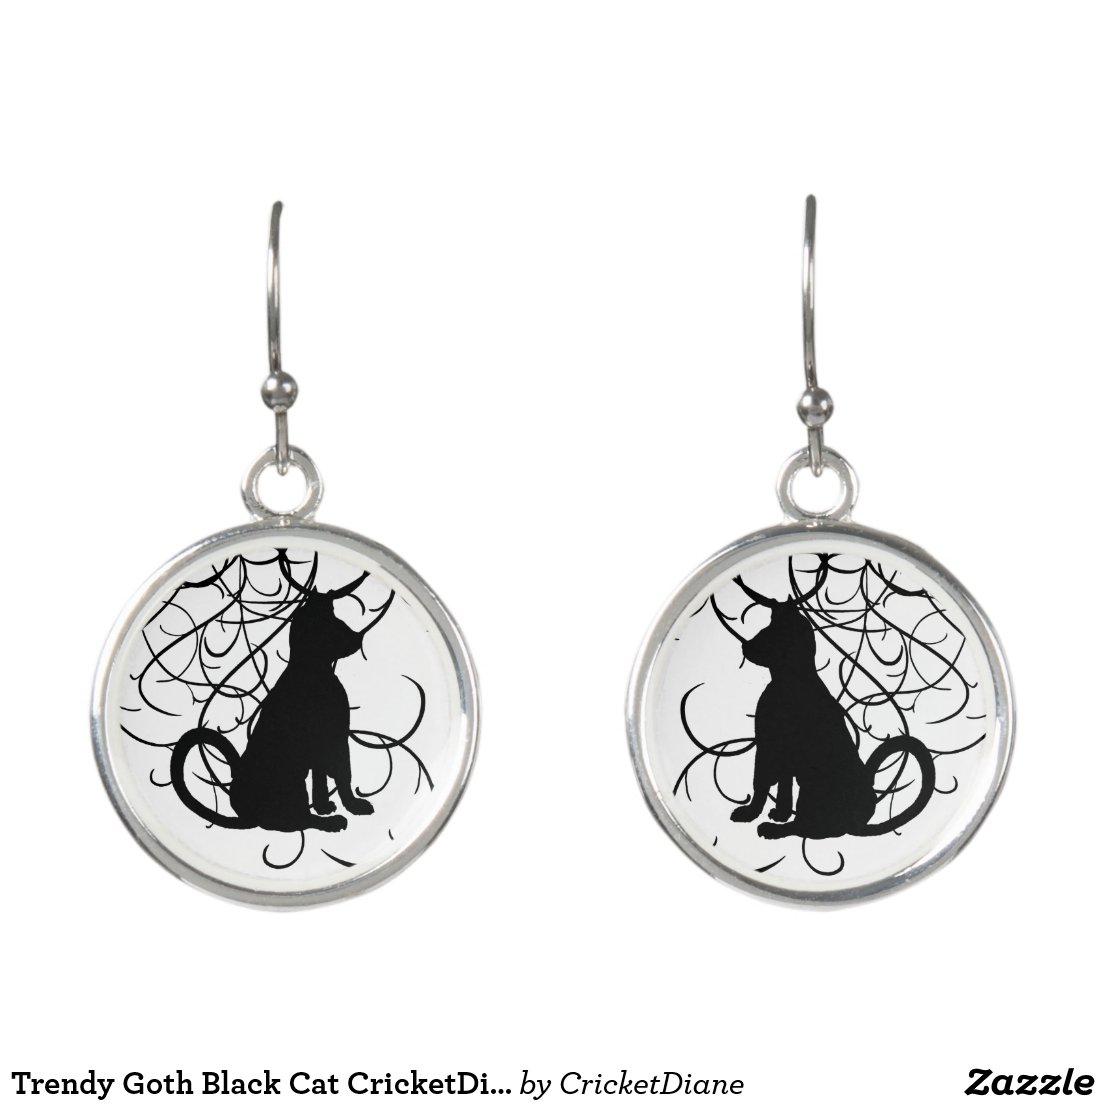 Trendy Goth Black Cat CricketDiane Earrings